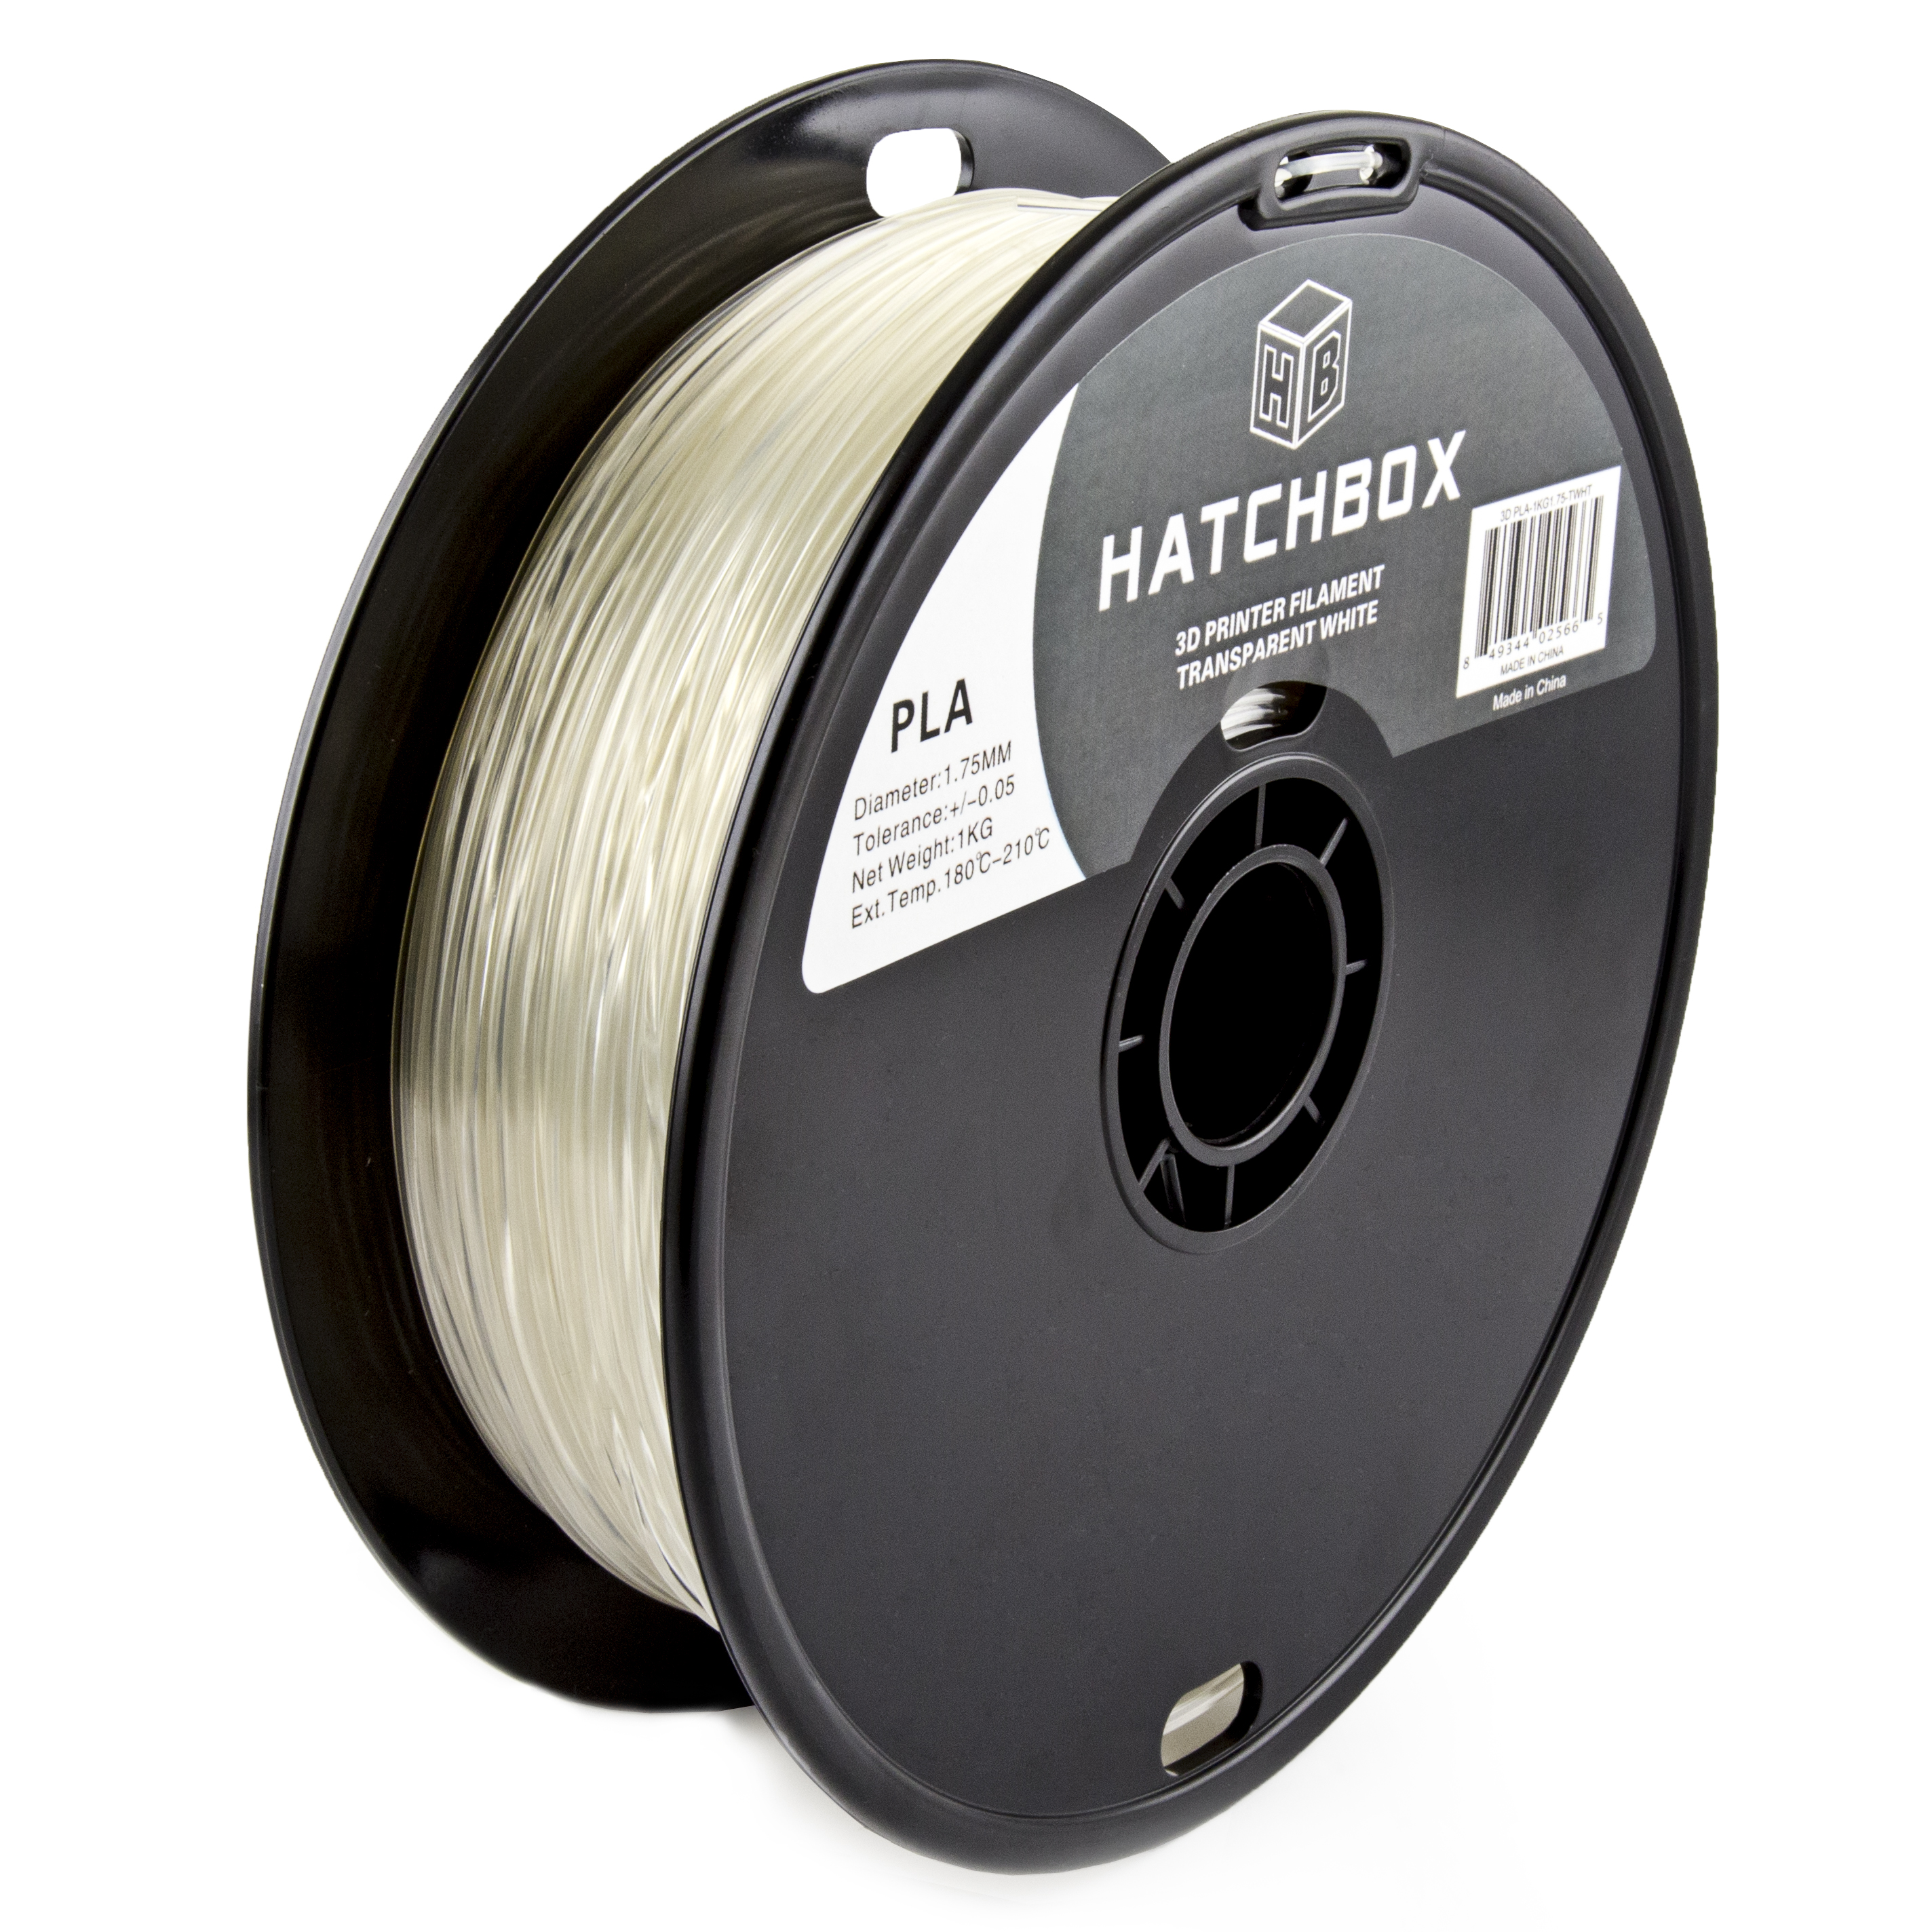 HATCHBOX 3D PLA-1KG1.75-TWHT PLA 3D Printer Filament, Dimensional Accuracy +/- 0.05 mm, 1 kg Spool, 1.75 mm, Transparent White